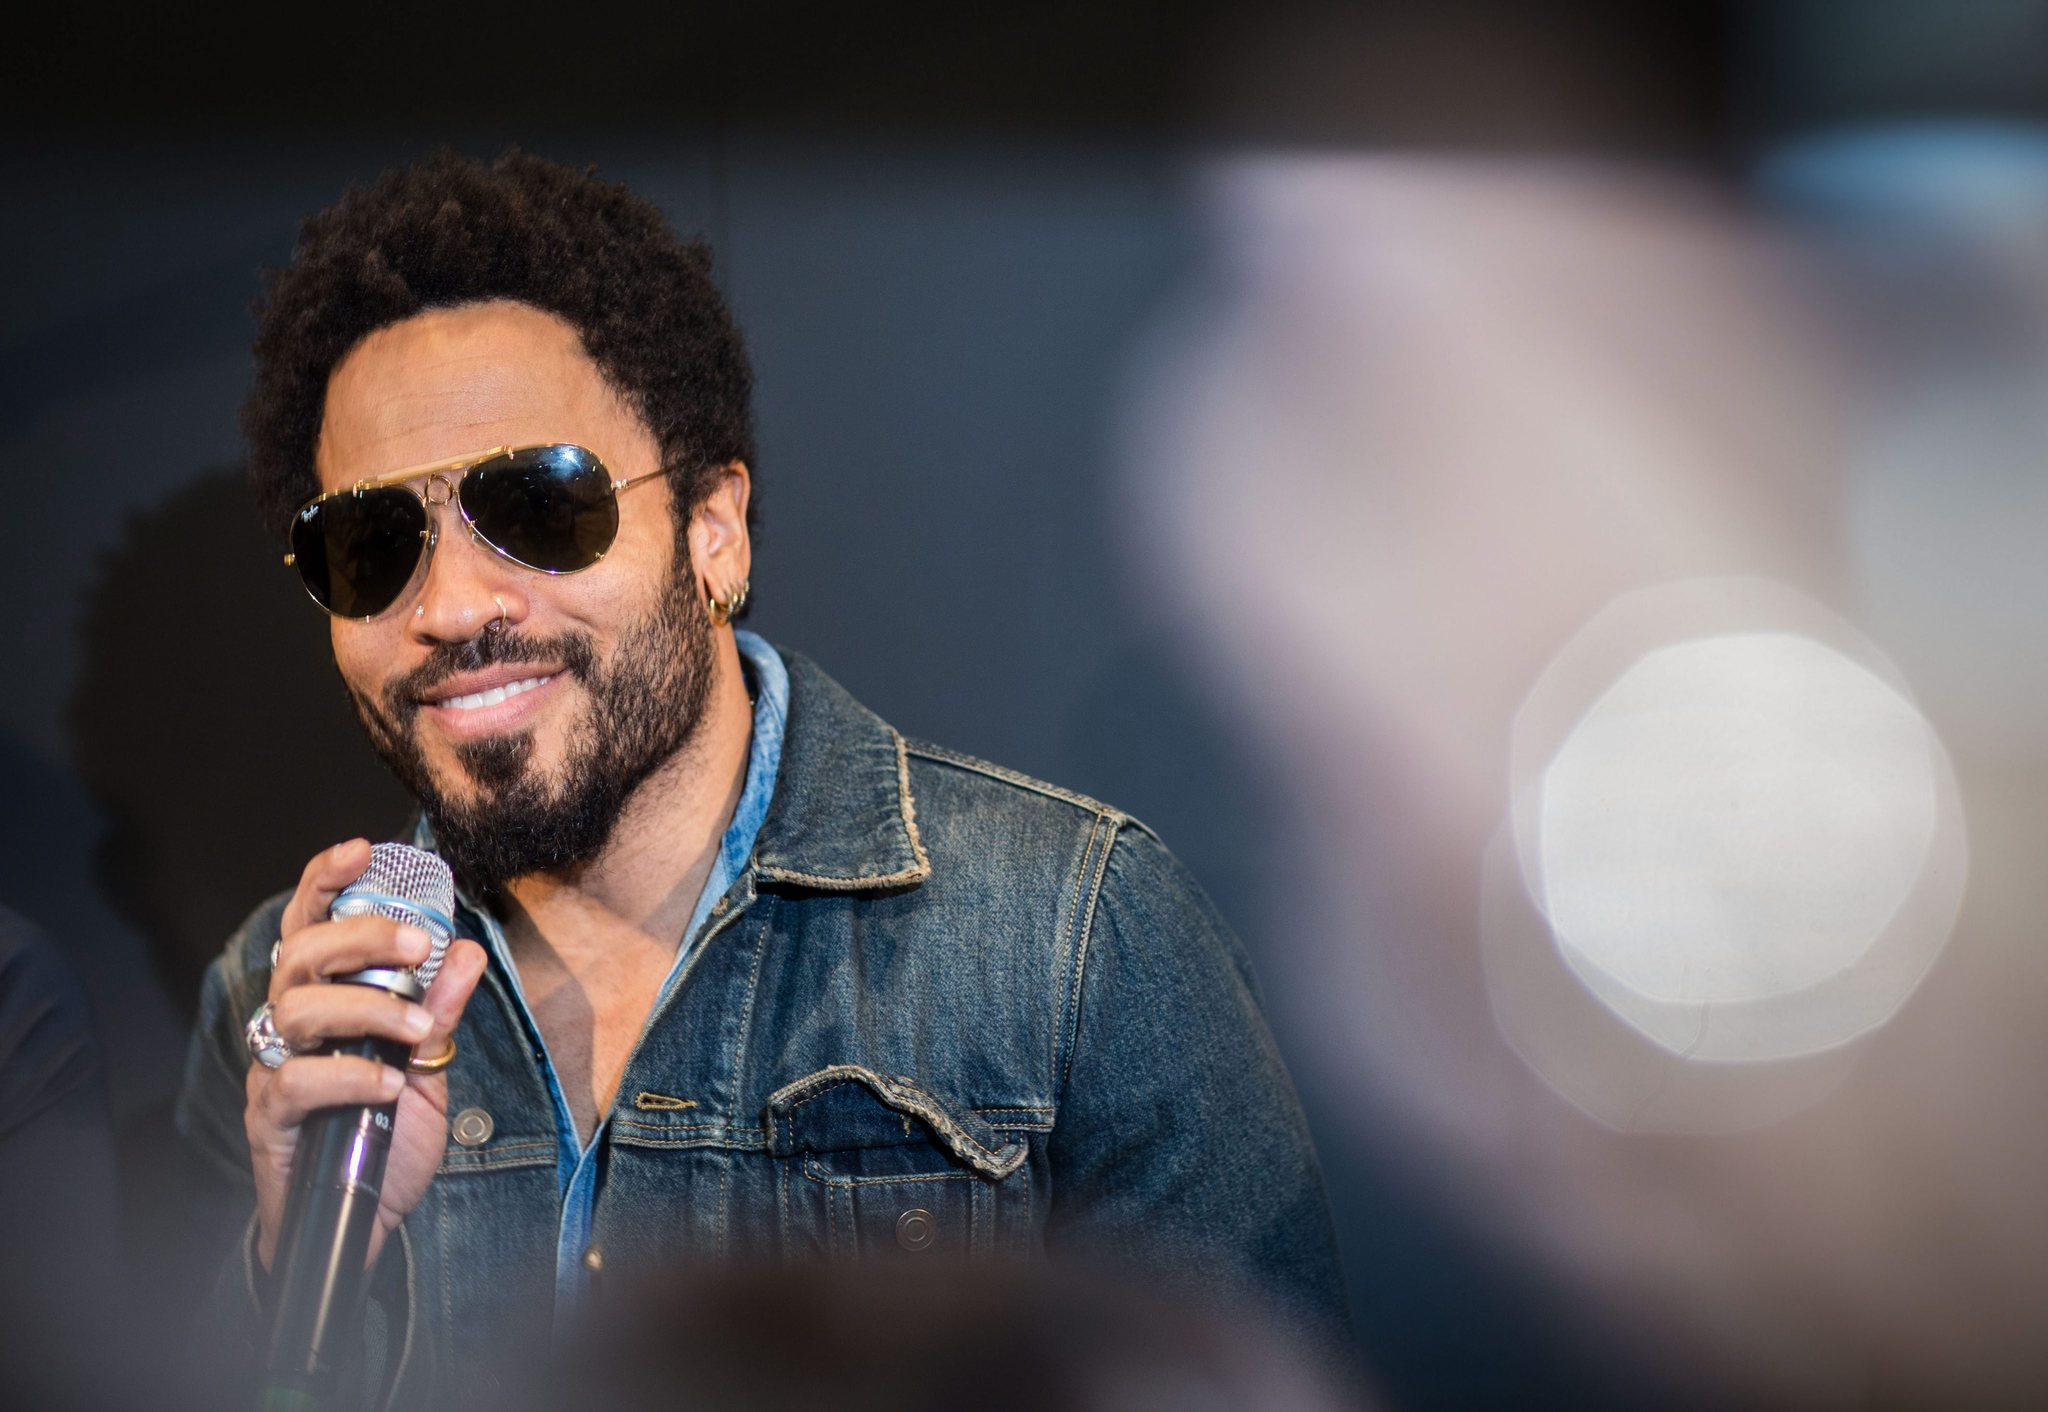 What Is Leather Made Of >> Lenny Kravitz's #penisgate moment takes the wardrobe-malfunction crown - LA Times